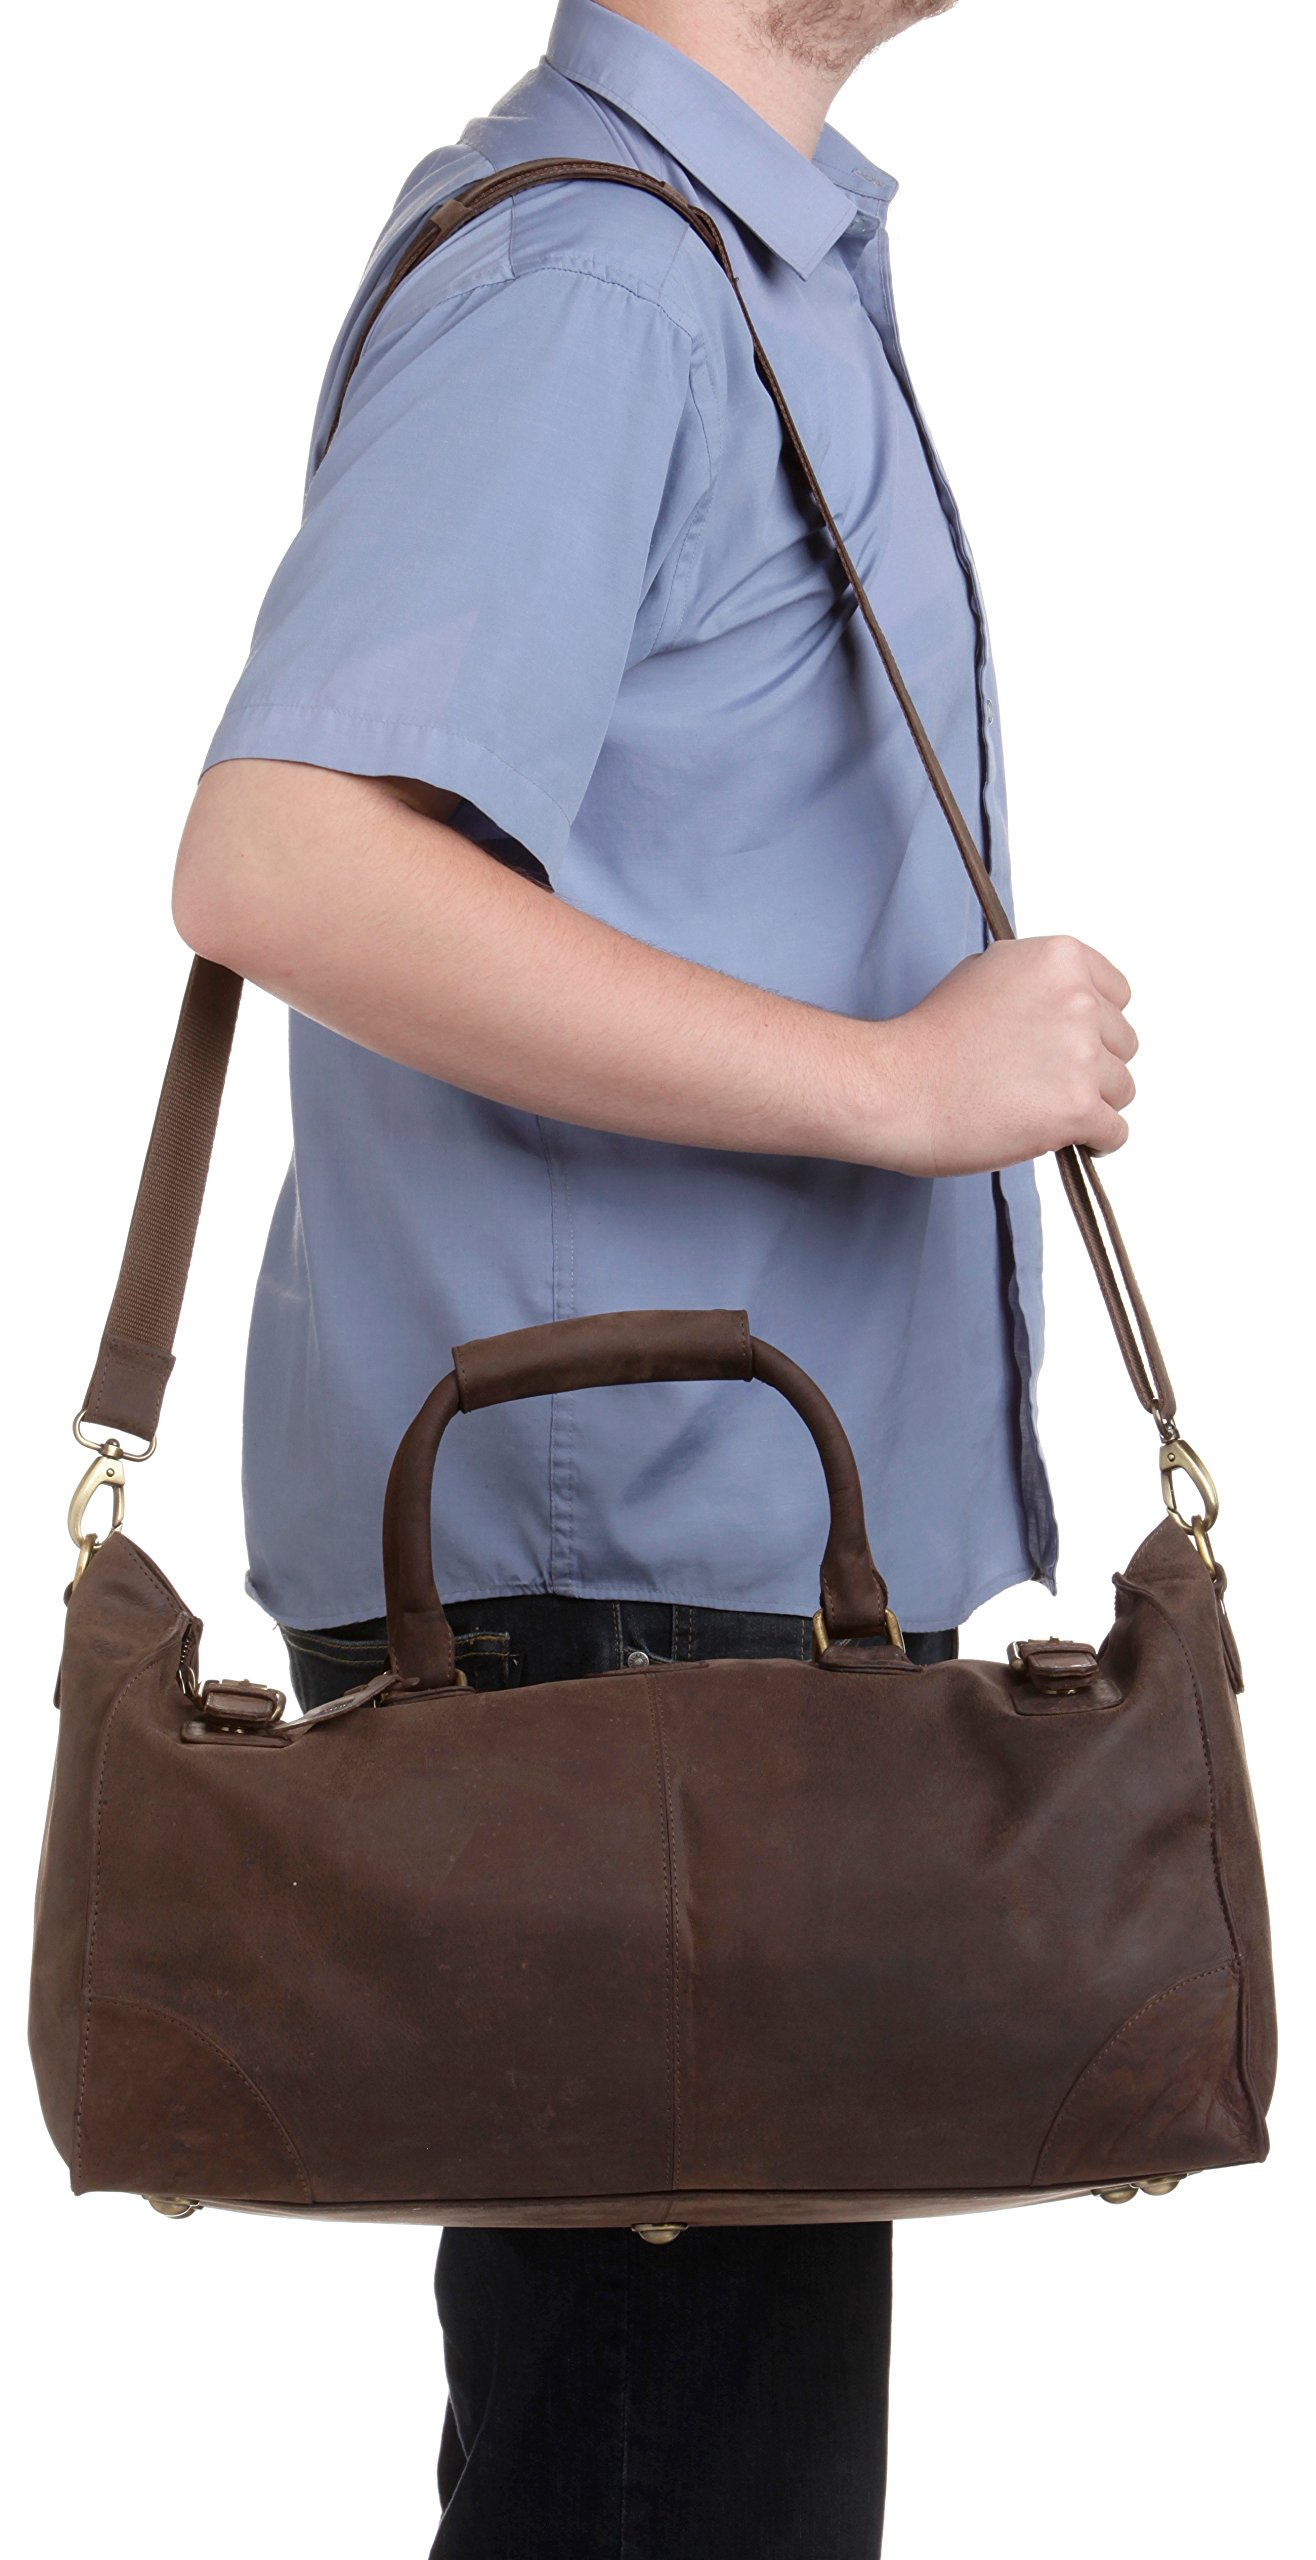 LEABAGS Durham genuine buffalo leather duffle bag in vintage style - Nutmeg by LEABAGS (Image #9)